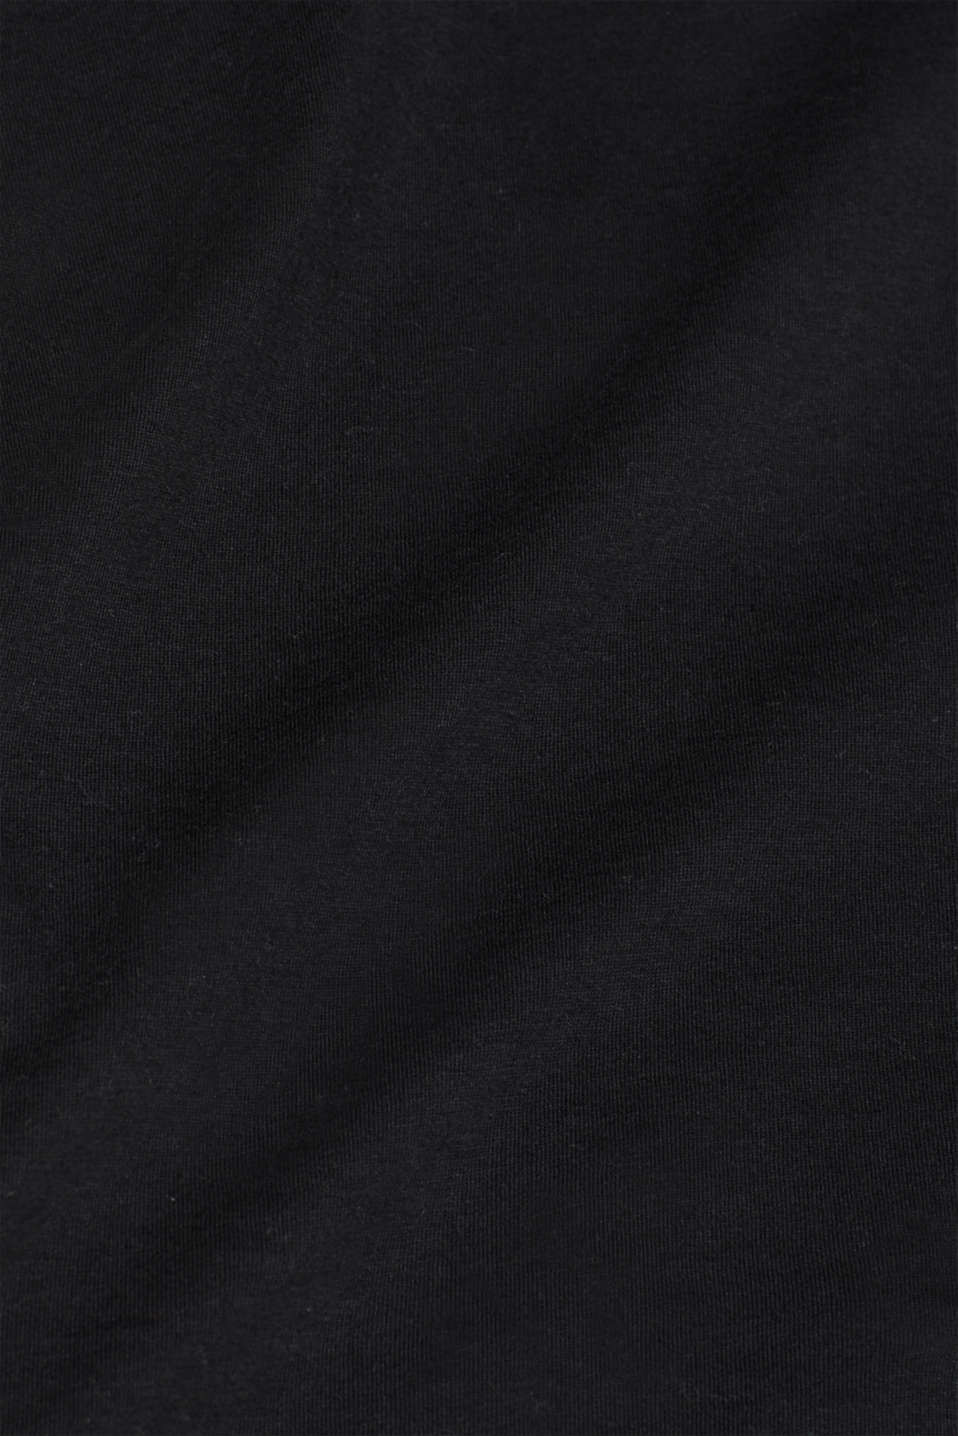 Jersey cotton top, BLACK, detail image number 5